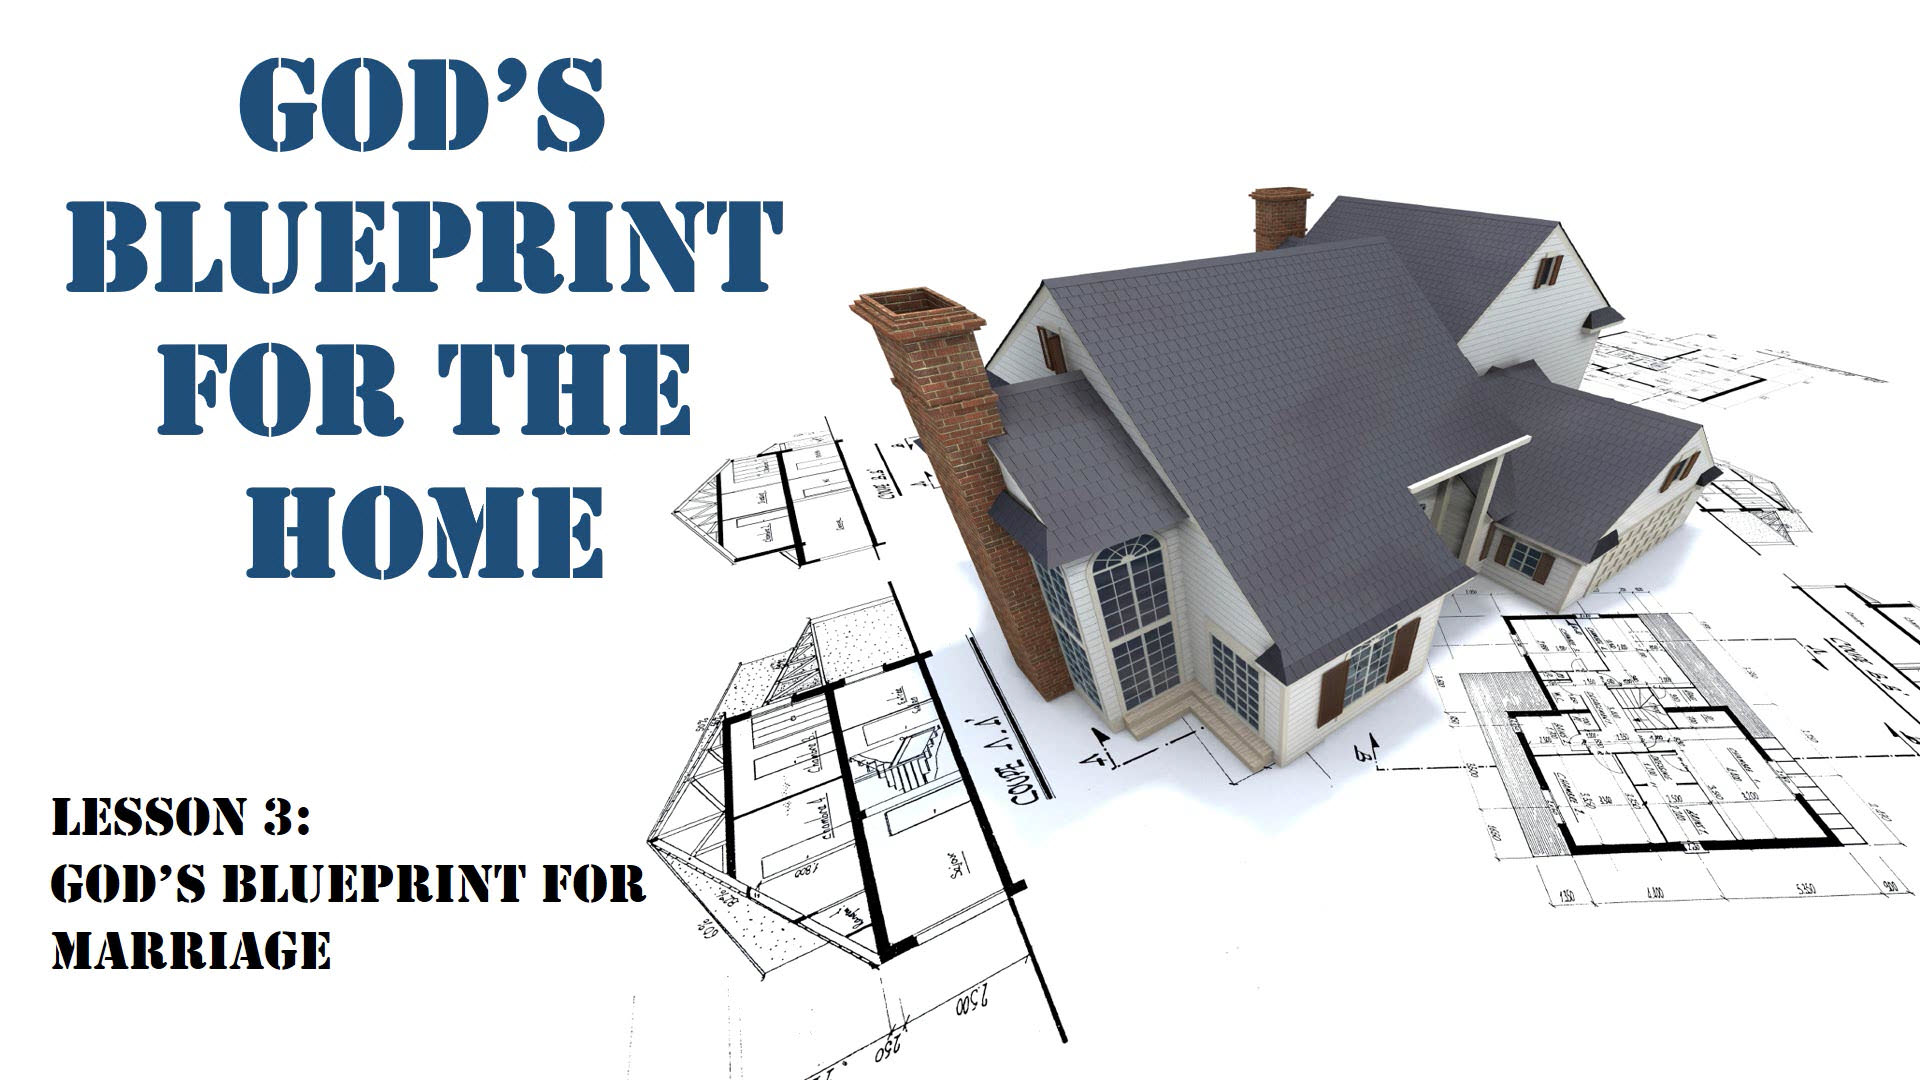 Gods blueprint for the home lesson 3 gods blueprint for marriage malvernweather Gallery